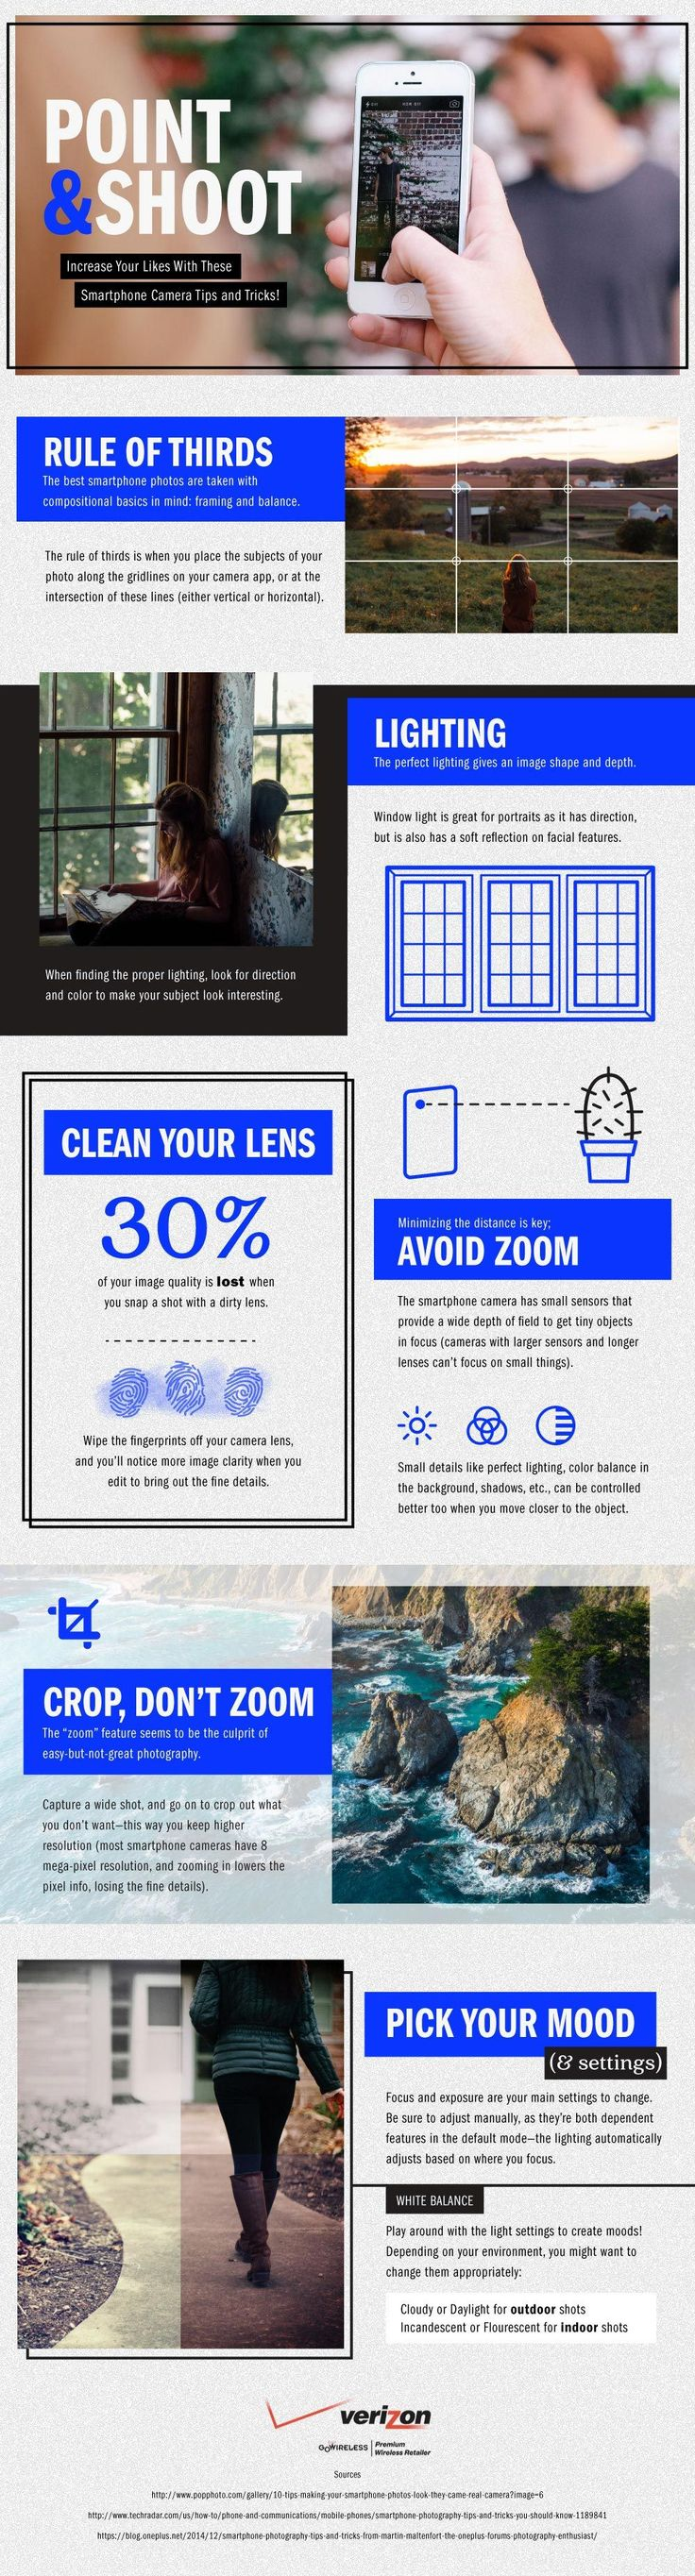 Smartphone Photography Tips and Tricks #Infographic #Photography #MobileDevices